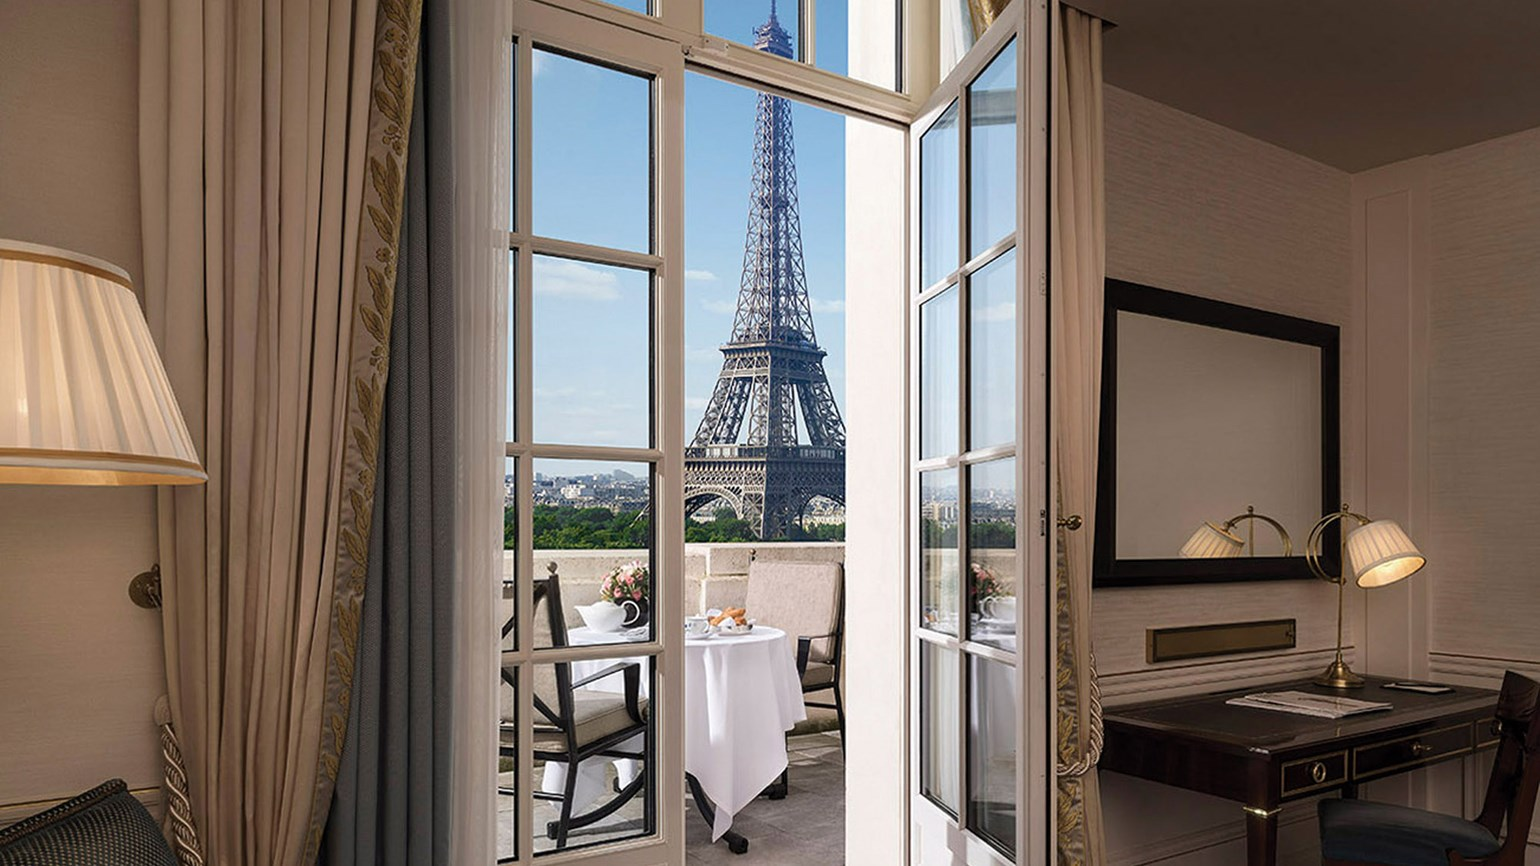 Paris 39 shangri la impresses as an opulent paradise travel for Eifel design hotel